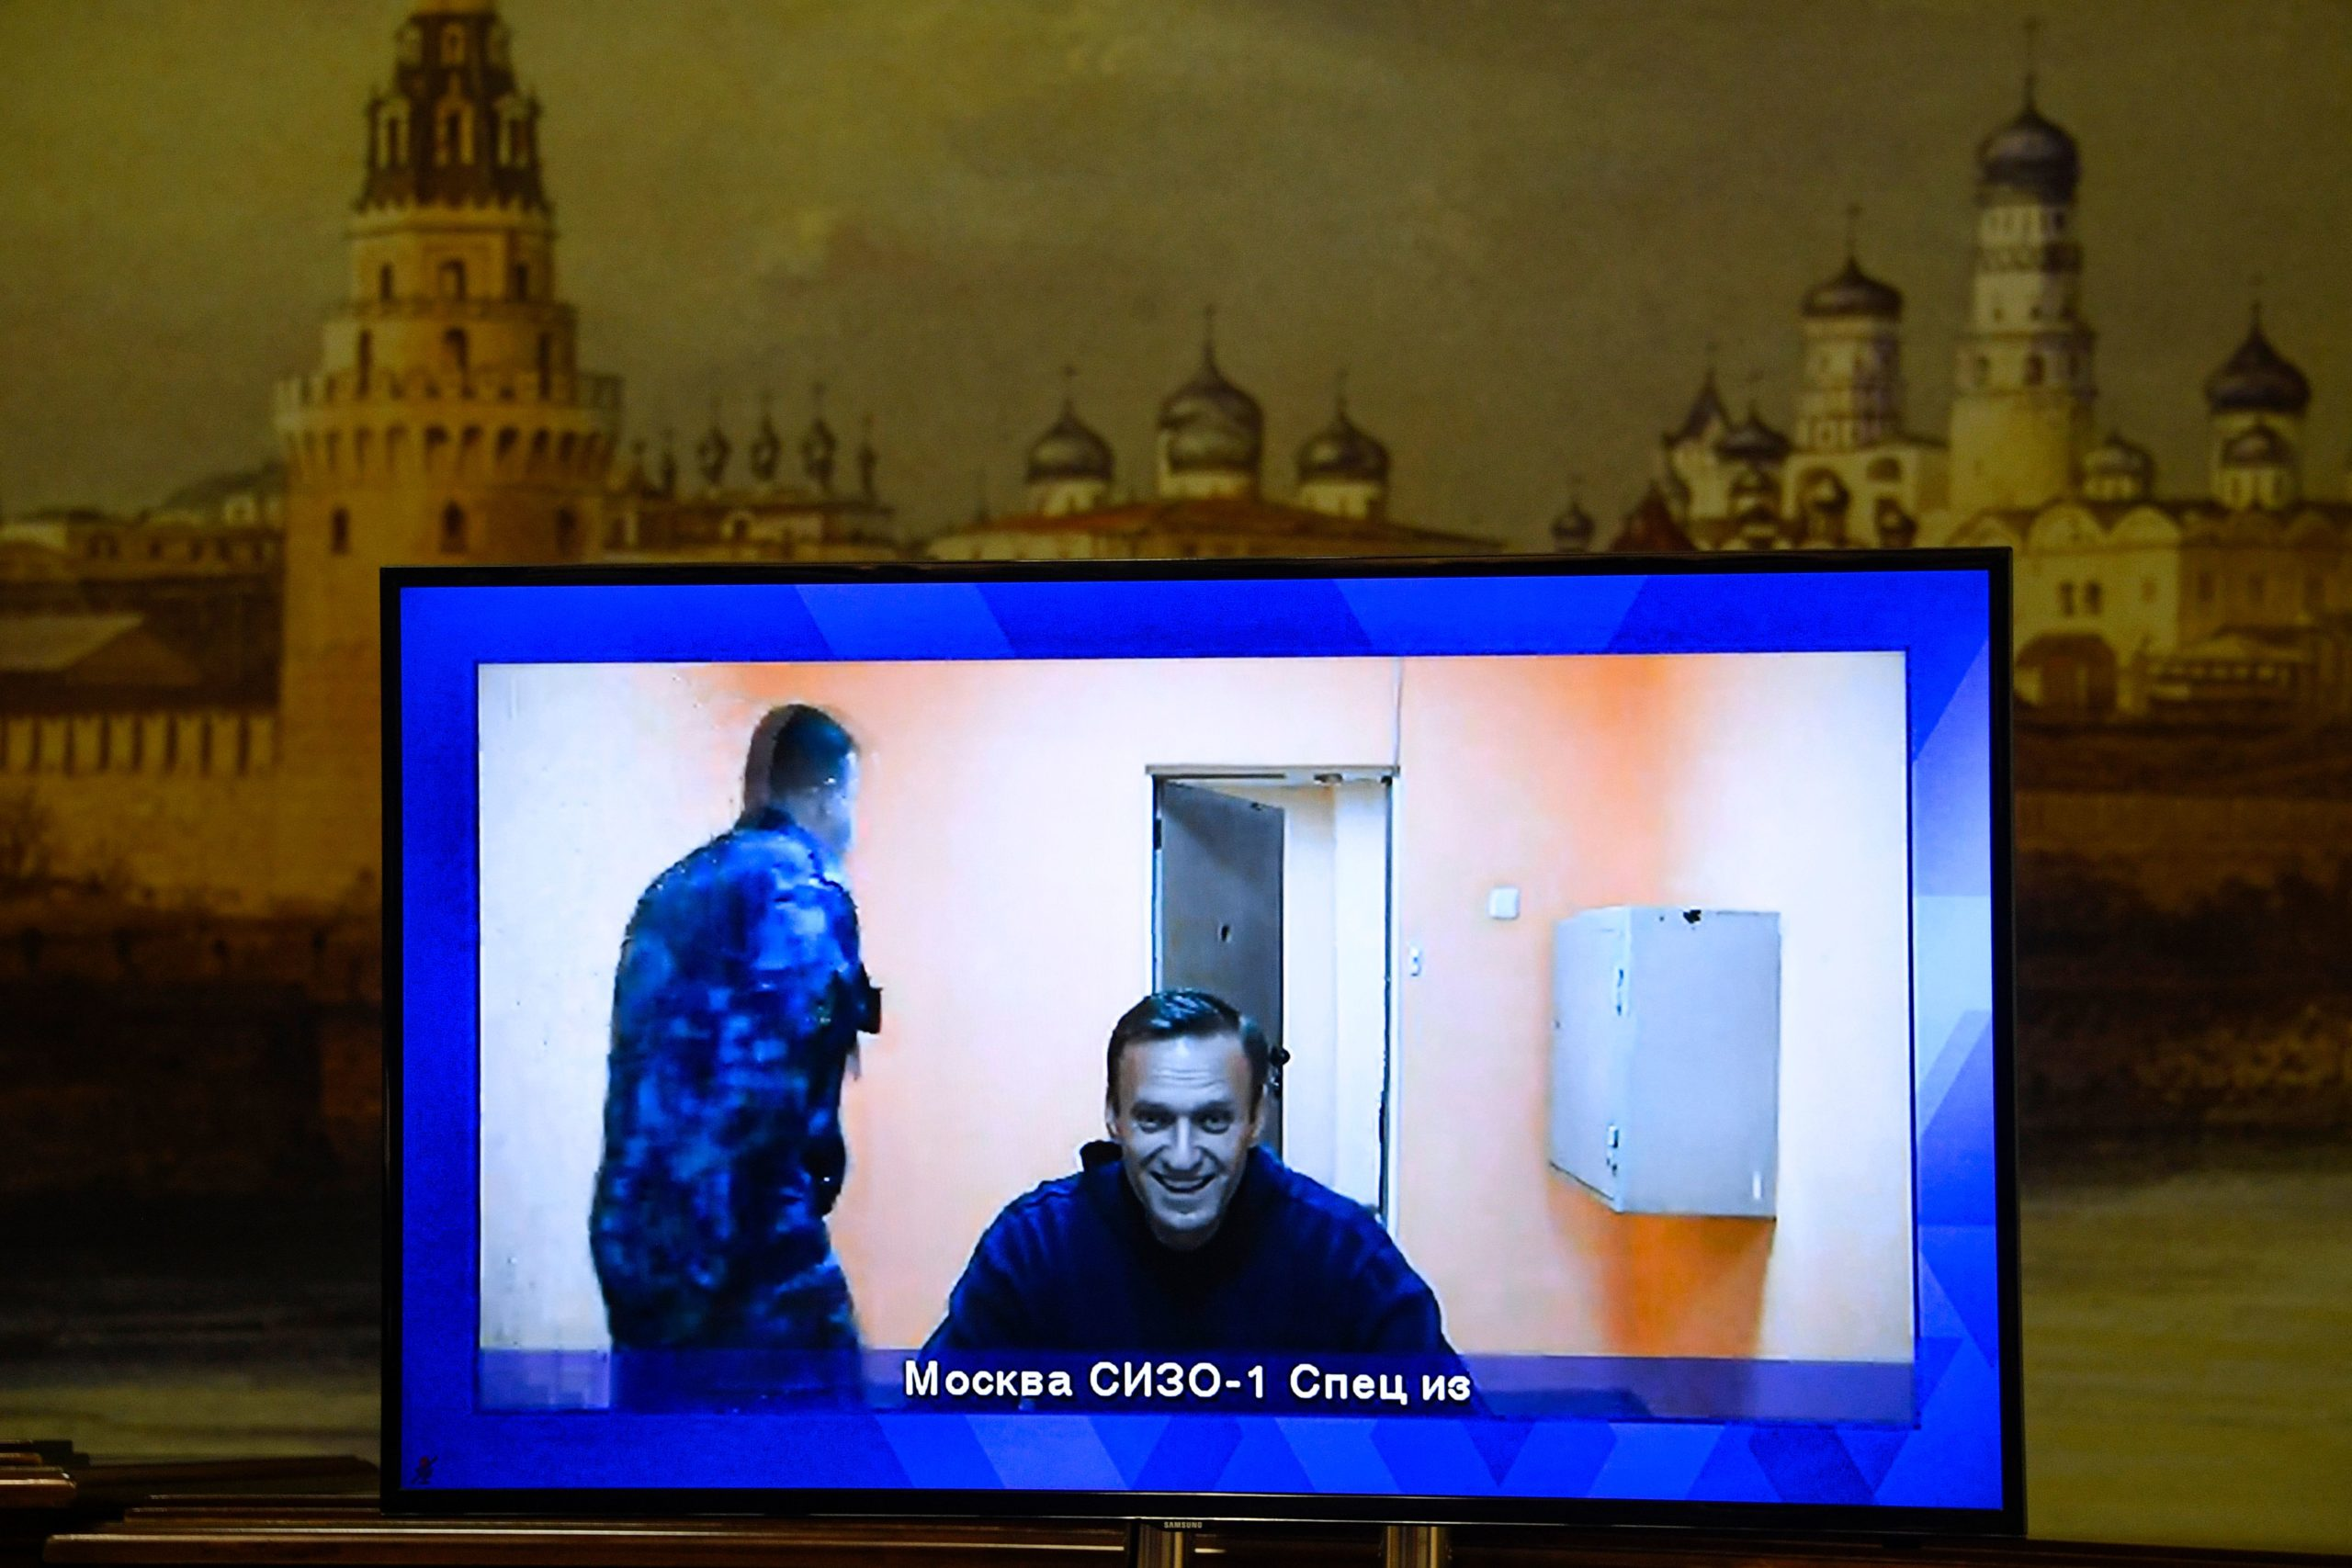 Opposition leader Alexei Navalny appears on a screen set up at a hall of the Moscow Regional Court via a video link from Moscow's penal detention centre Number 1 (known as Matrosskaya Tishina) during a court hearing of an appeal against his arrest, in Krasnogorsk outside Moscow on January 28, 2021. - Navalny, 44, was detained on January 17 upon returning to Moscow after five months in Germany recovering from a near-fatal poisoning with a nerve agent and later jailed for 30 days while awaiting trial for violating a suspended sentence he was handed in 2014. (Photo by Alexander NEMENOV / AFP) (Photo by ALEXANDER NEMENOV/AFP via Getty Images)